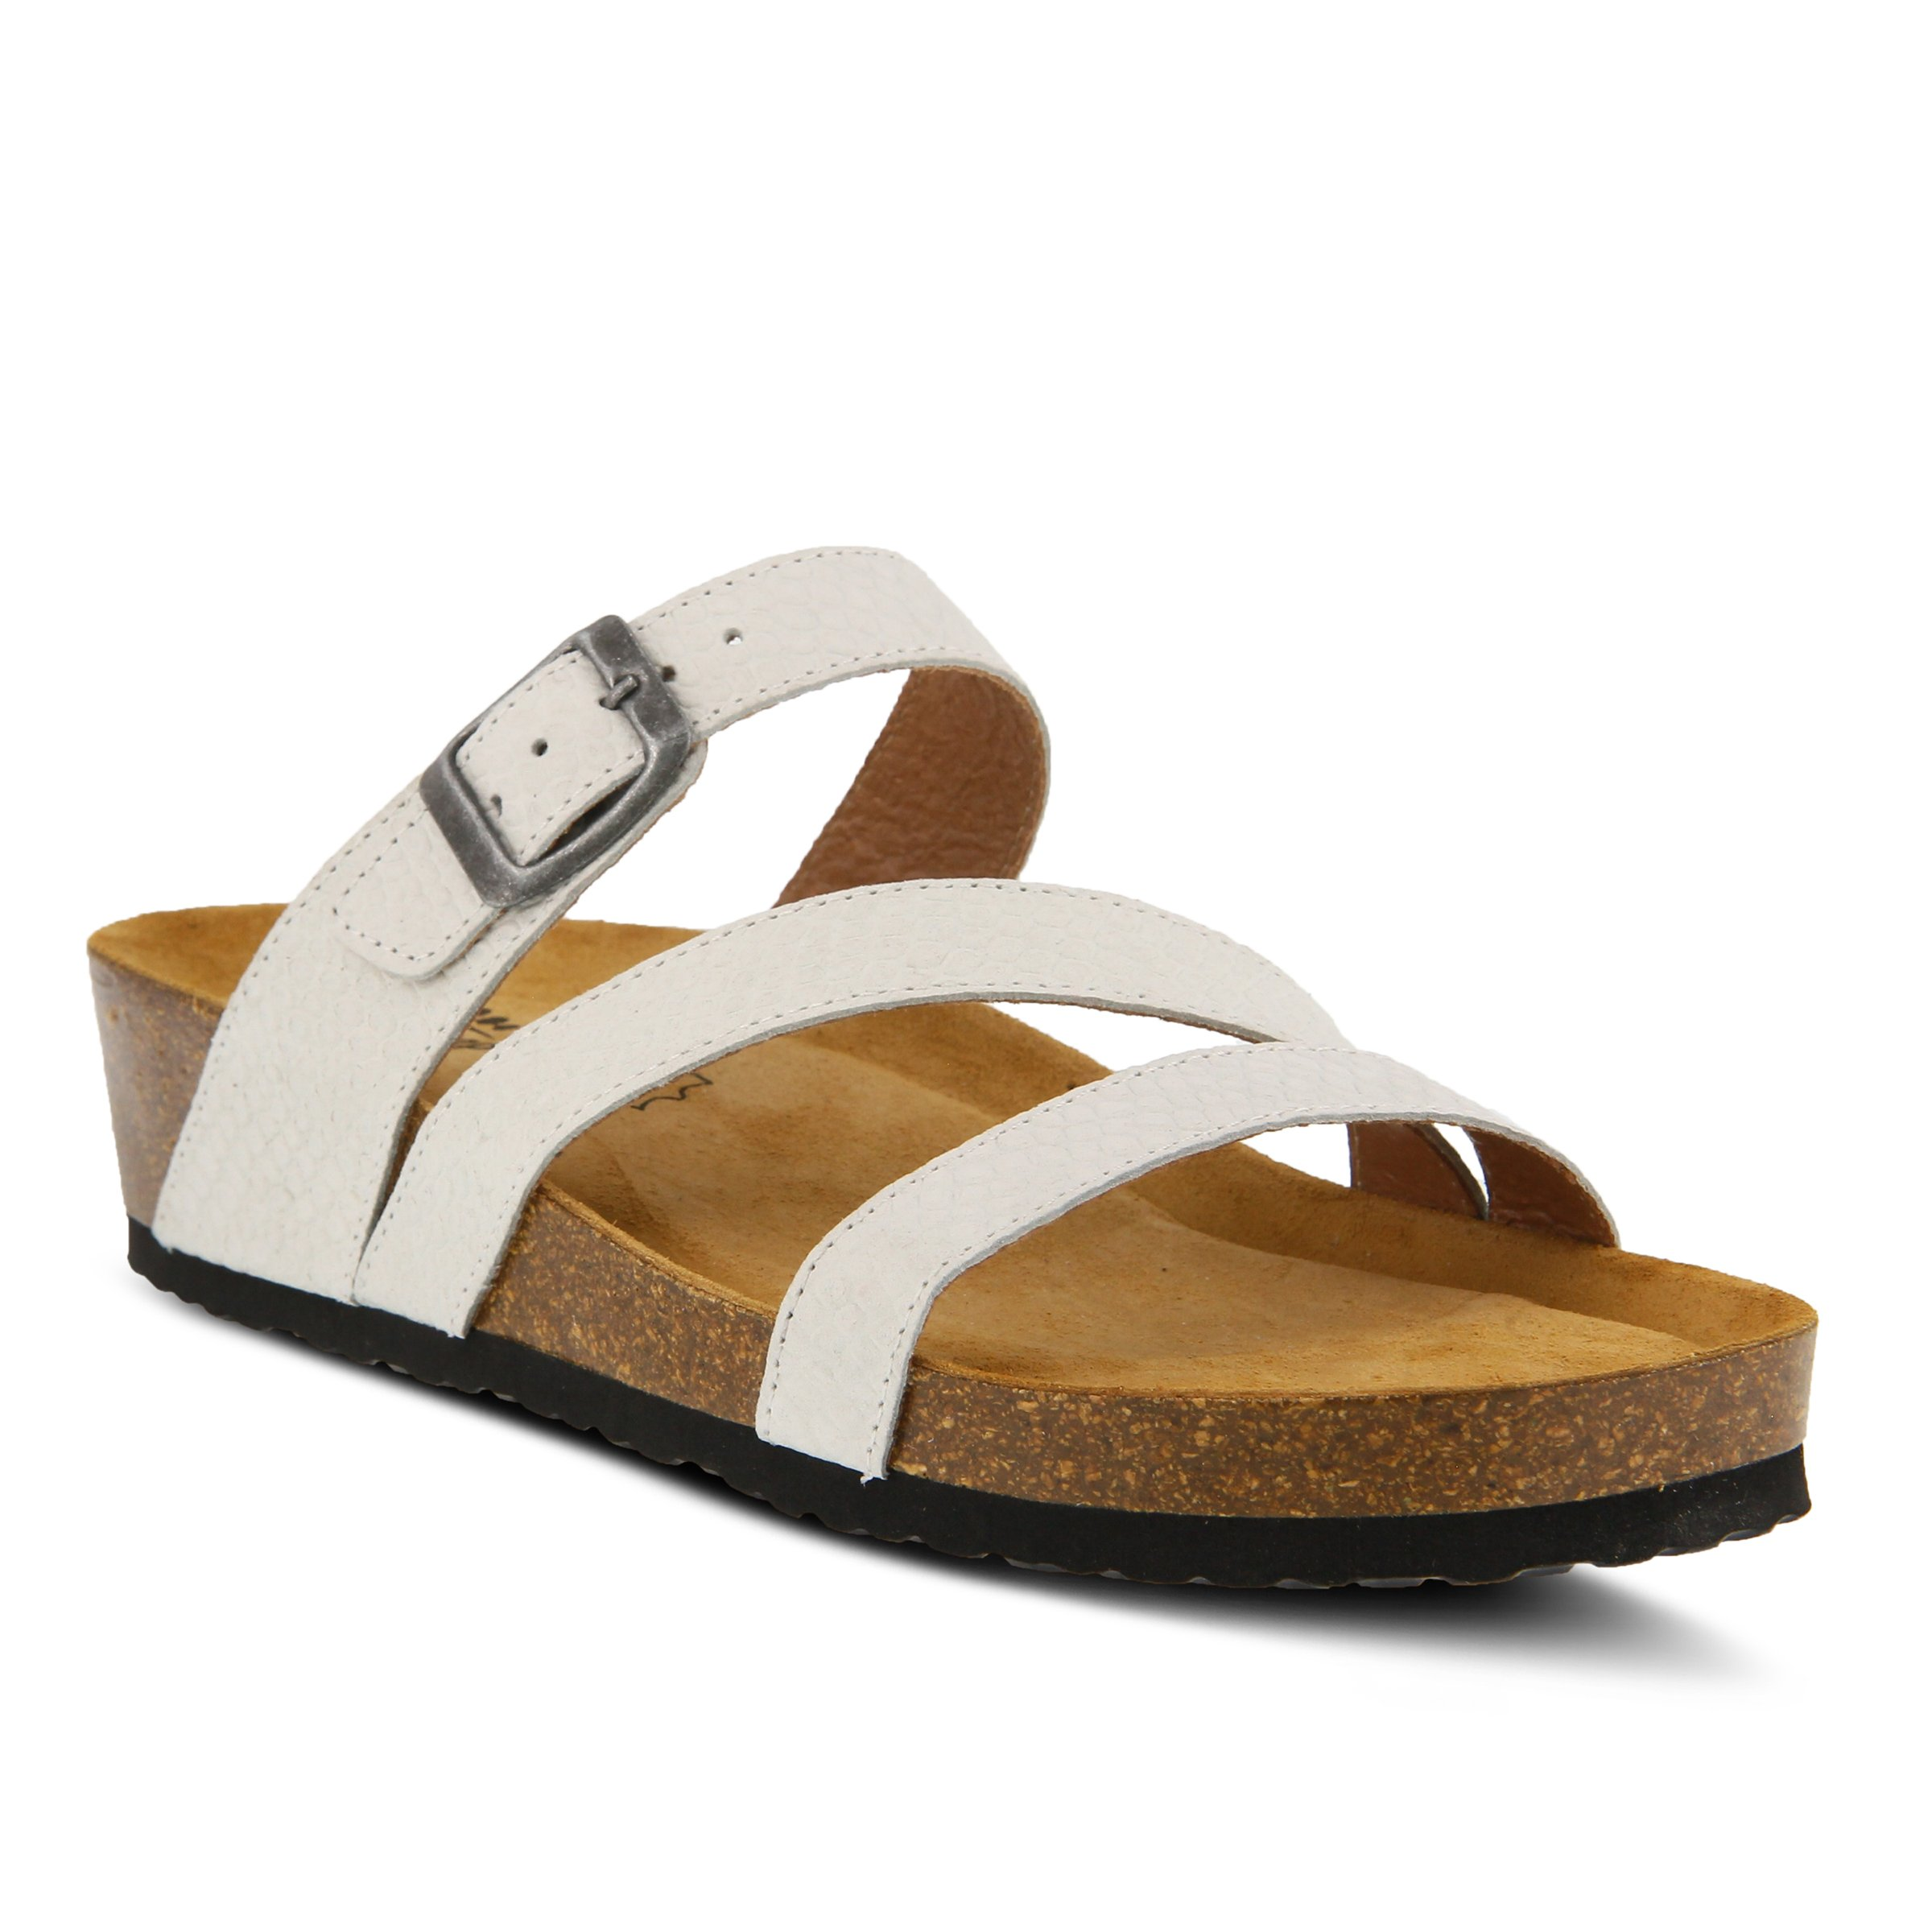 Spring Step Women's Style Flossie White EURO Size 39 Leather Slide Sandal